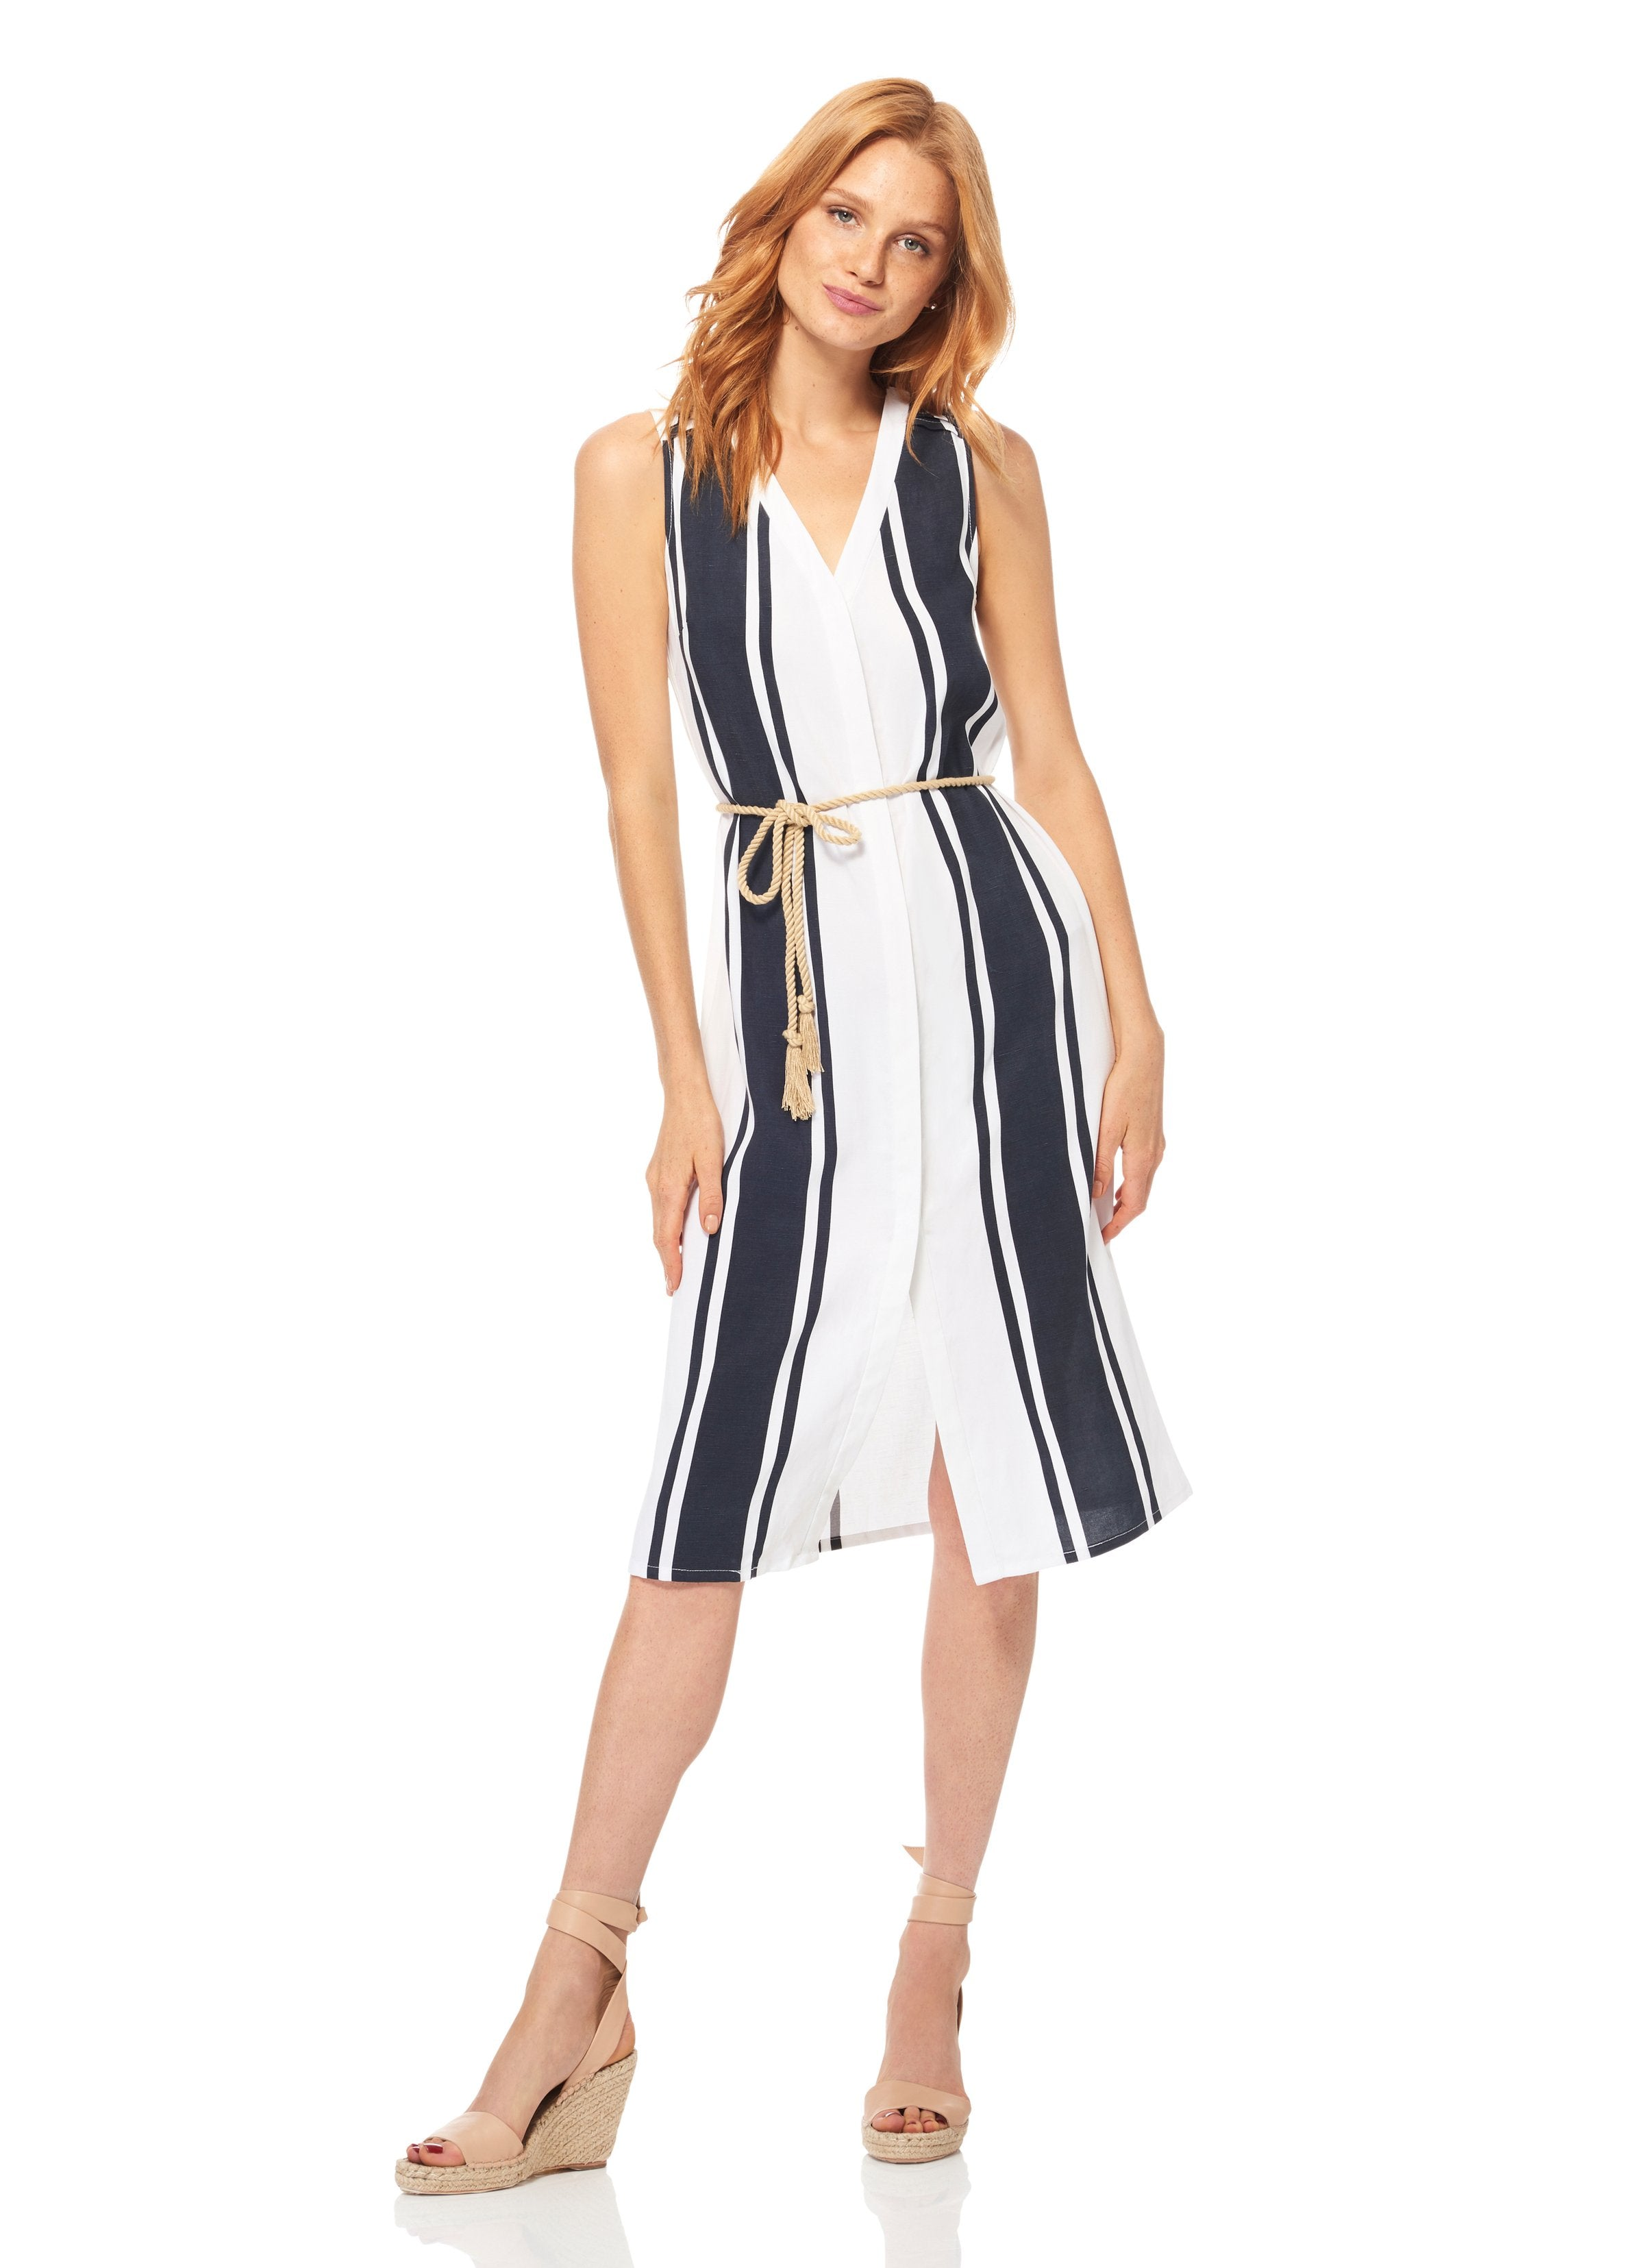 Ecru Bold Stripe Dress with Rope Belt